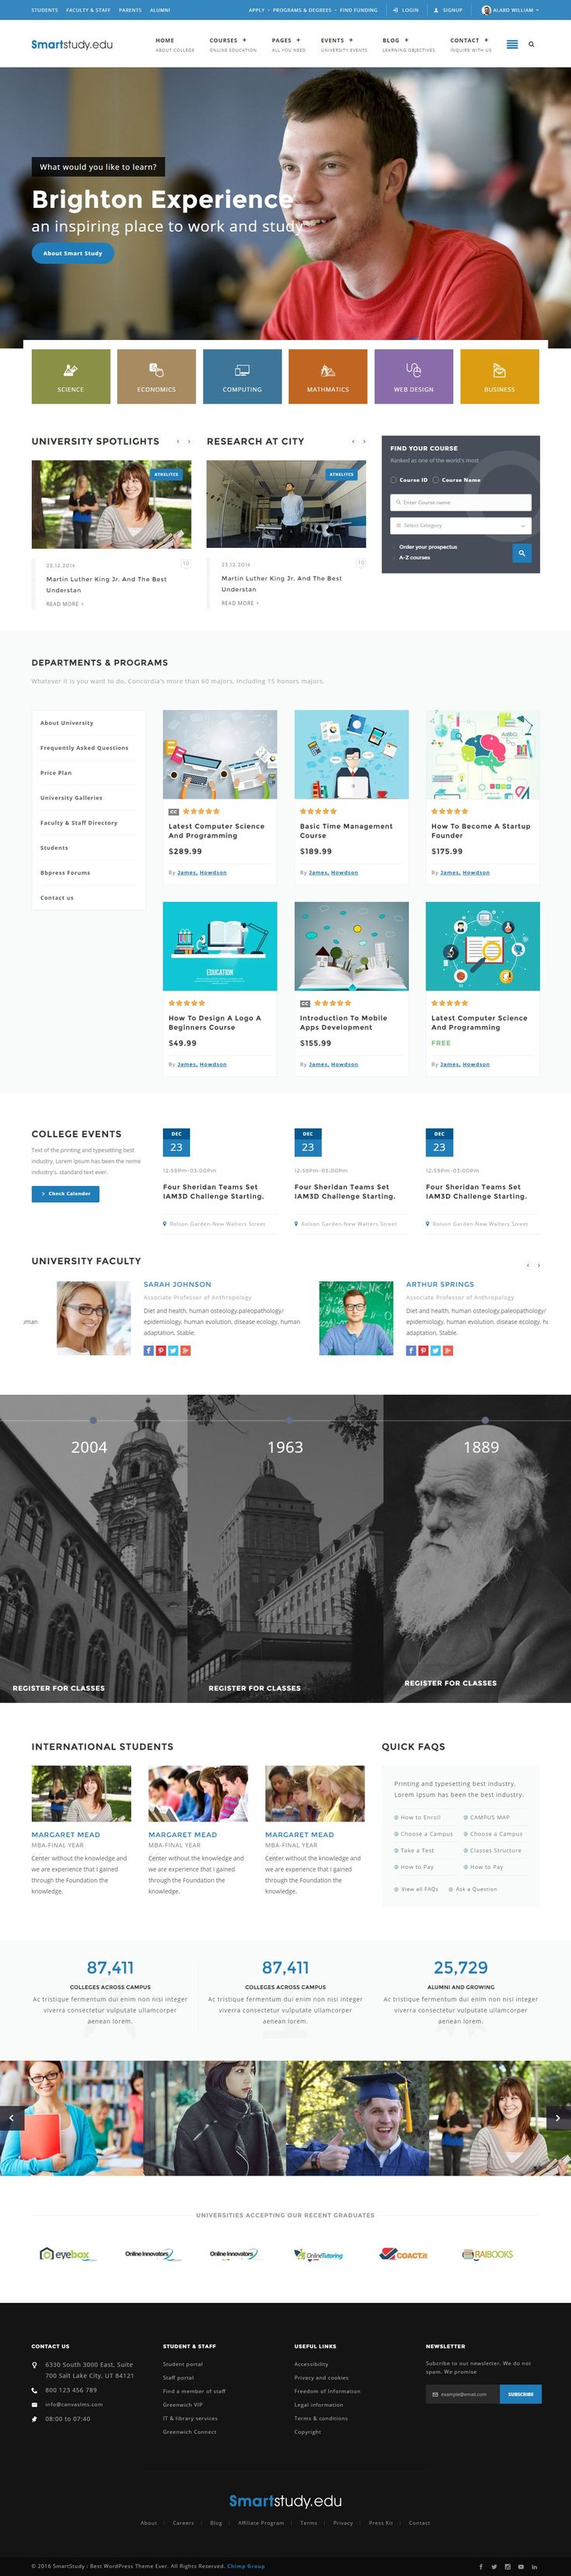 Buy smartstudy responsive education html template by chimpstudio on themeforest smart study is a professional learning management system responsive site